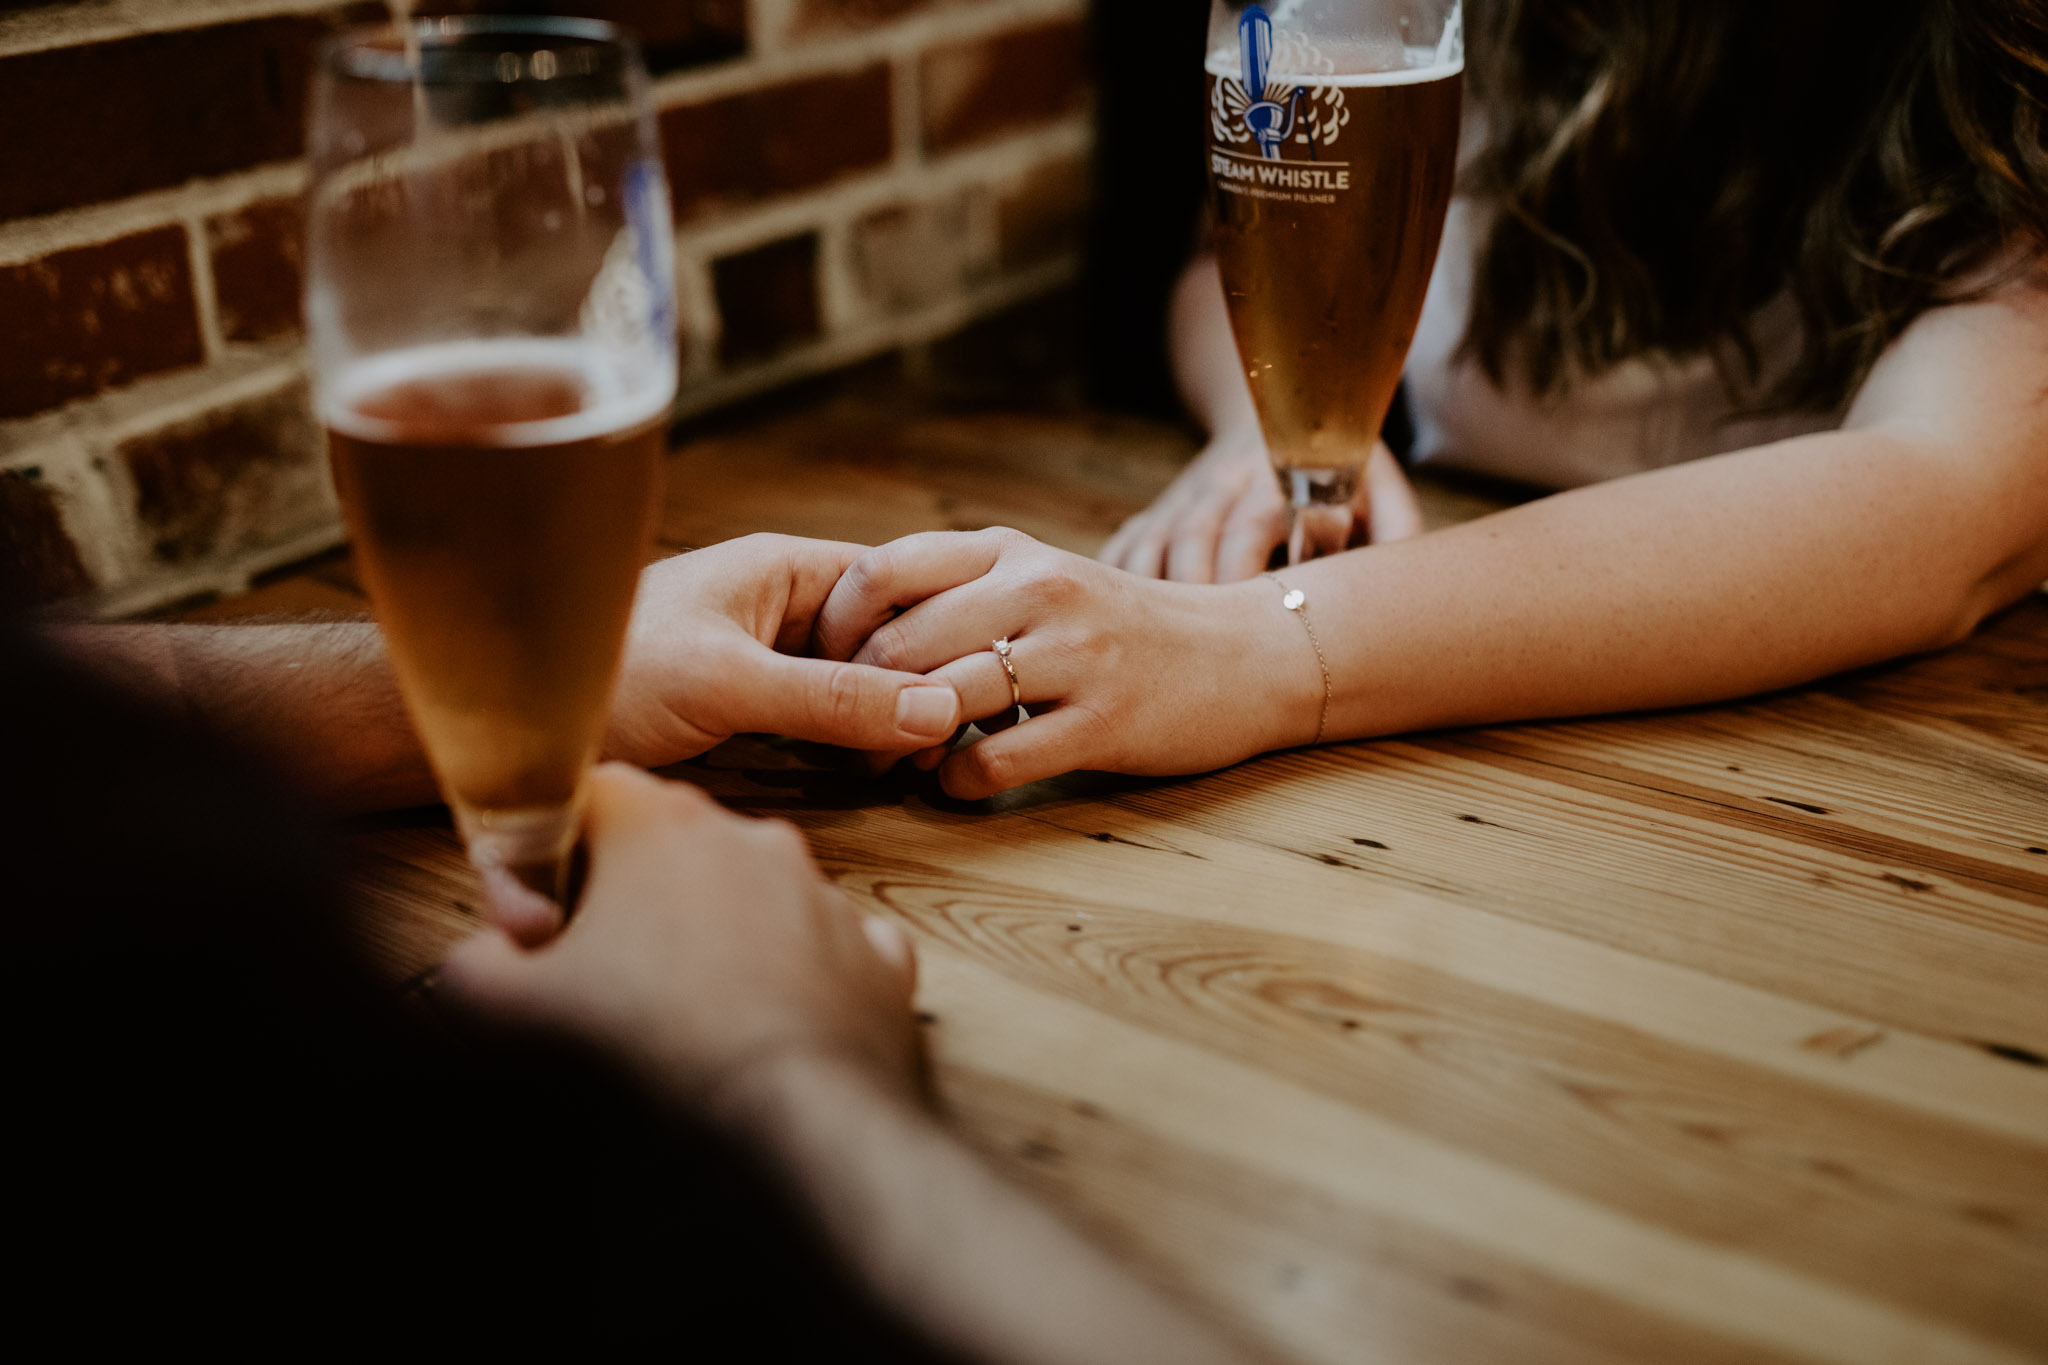 SteamWhistle Brewery Engagement - couple's hand touching while drinking beer